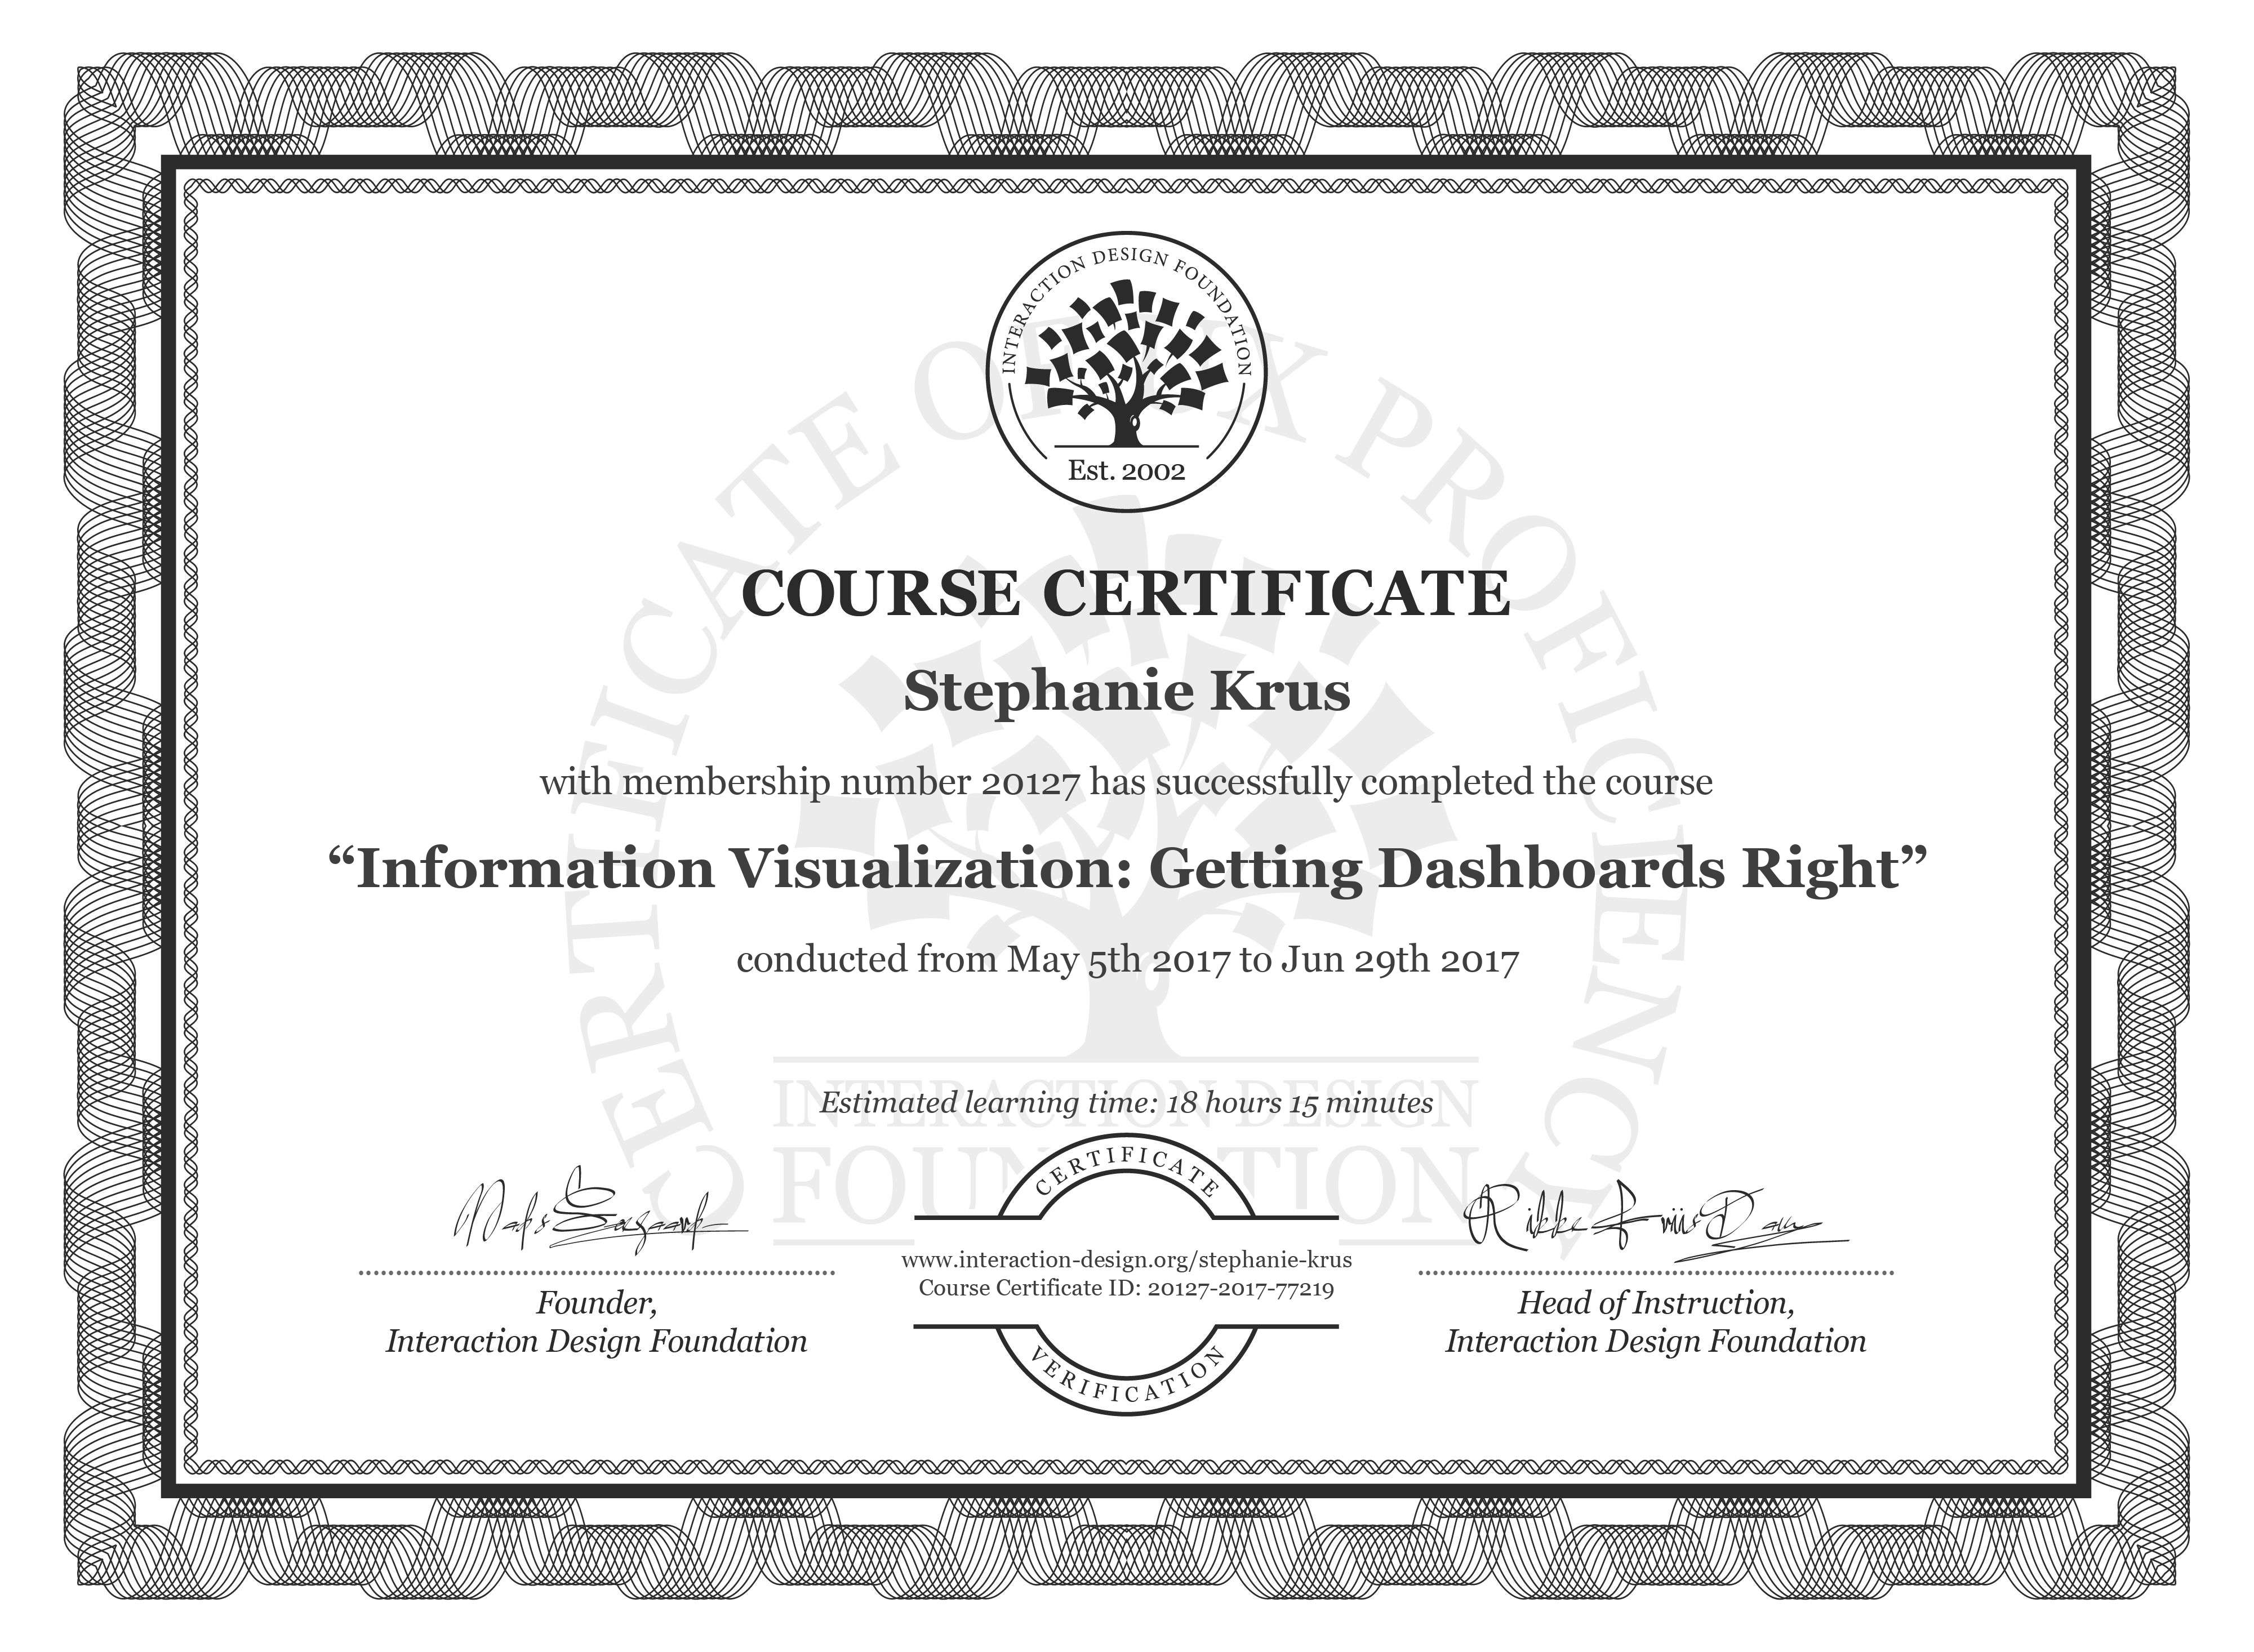 Stephanie Krus's Course Certificate: Information Visualization: Getting Dashboards Right